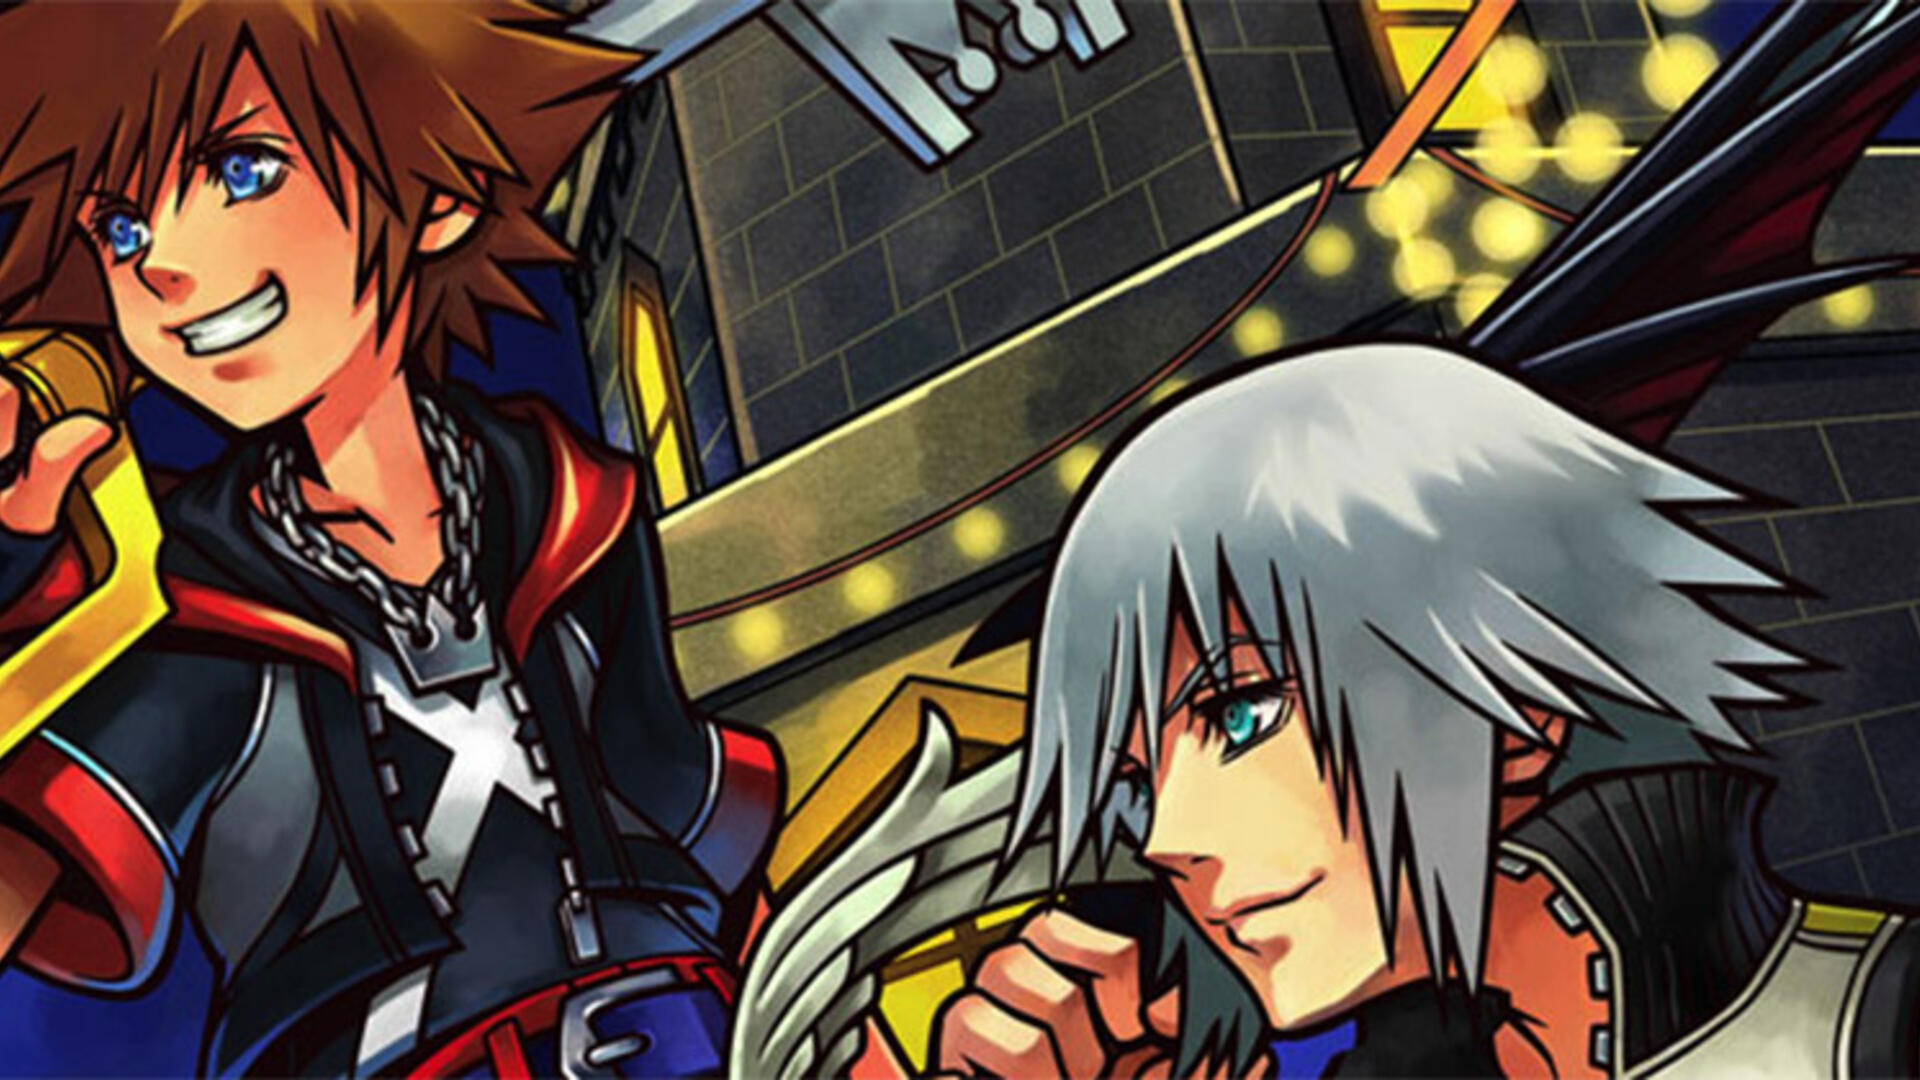 Square-Enix Completes the Remake Cycle with Kingdom Hearts II.8